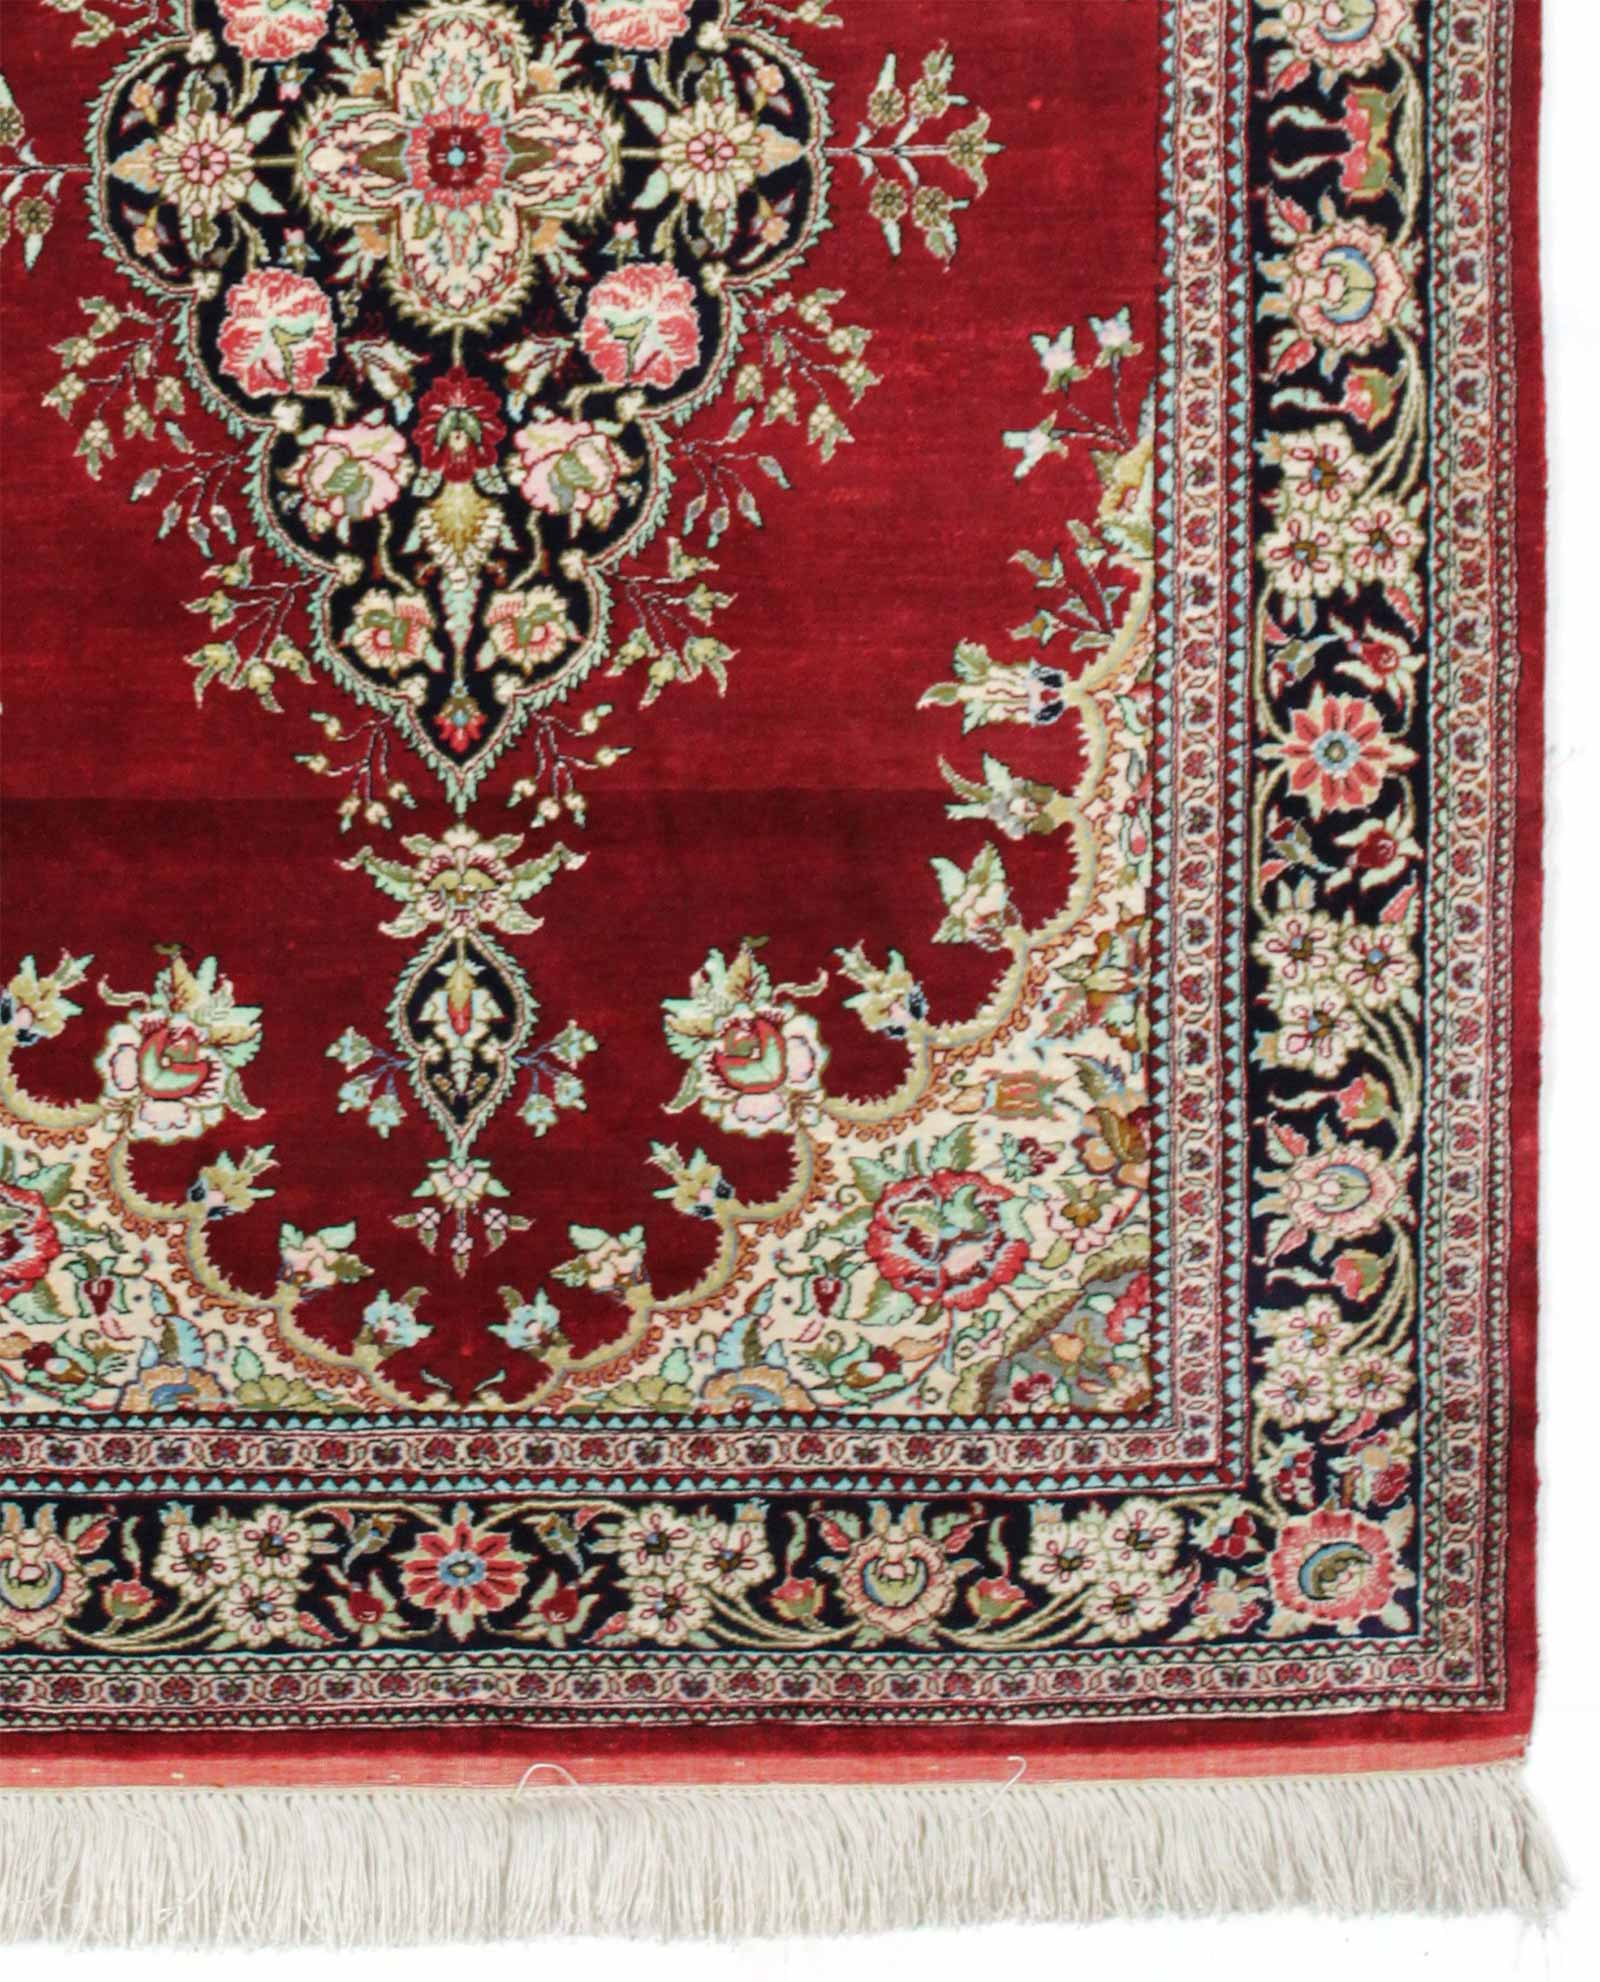 tapis persan ghom soie 15135 iranian carpet. Black Bedroom Furniture Sets. Home Design Ideas